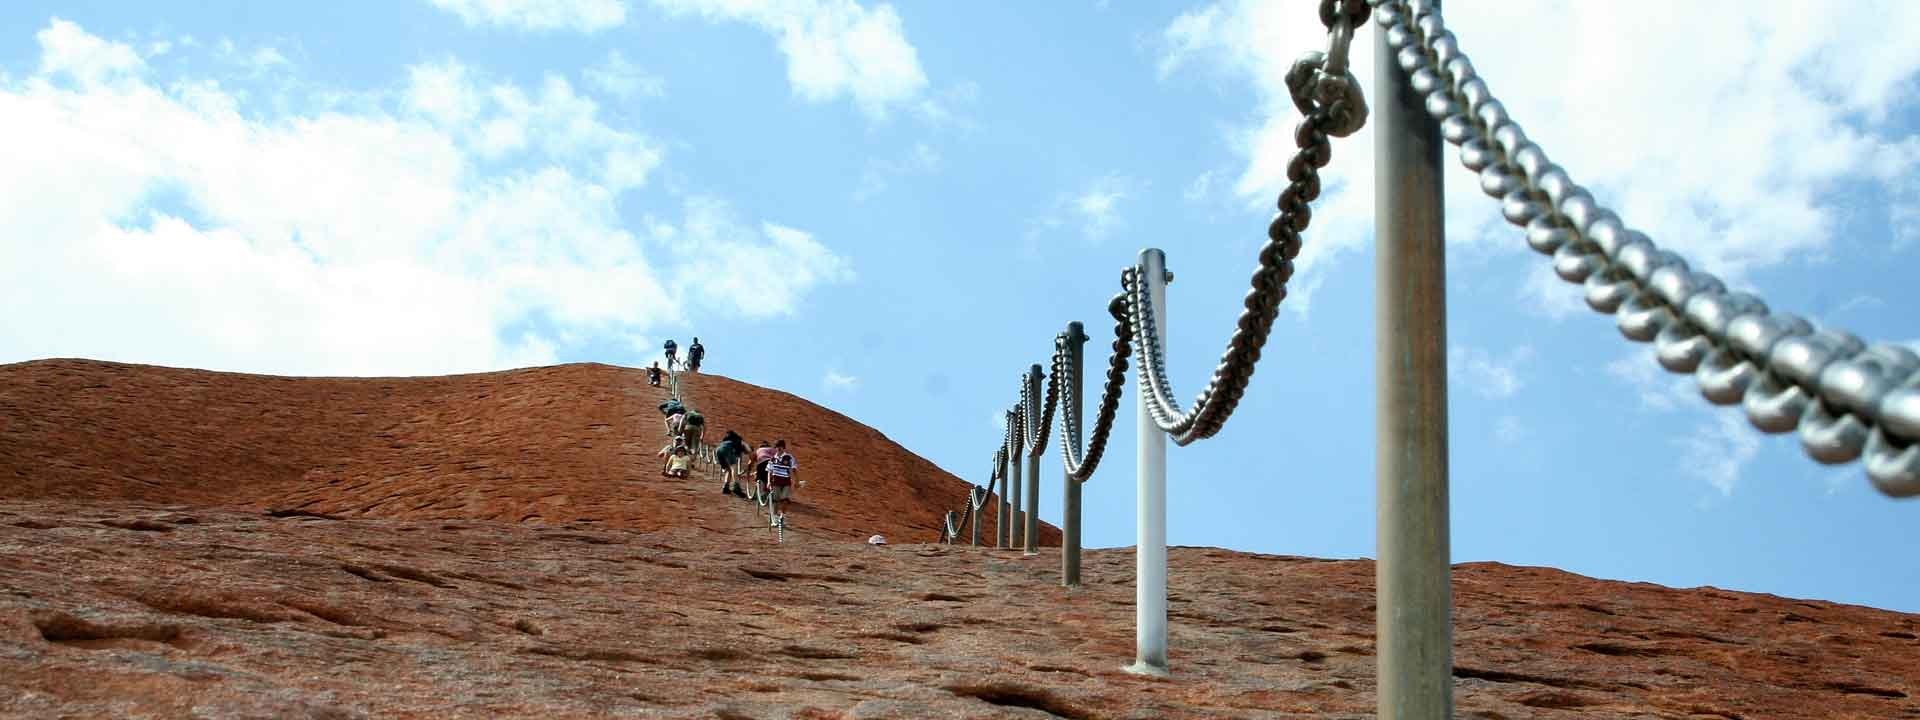 Uluru Day Tours Safety Image